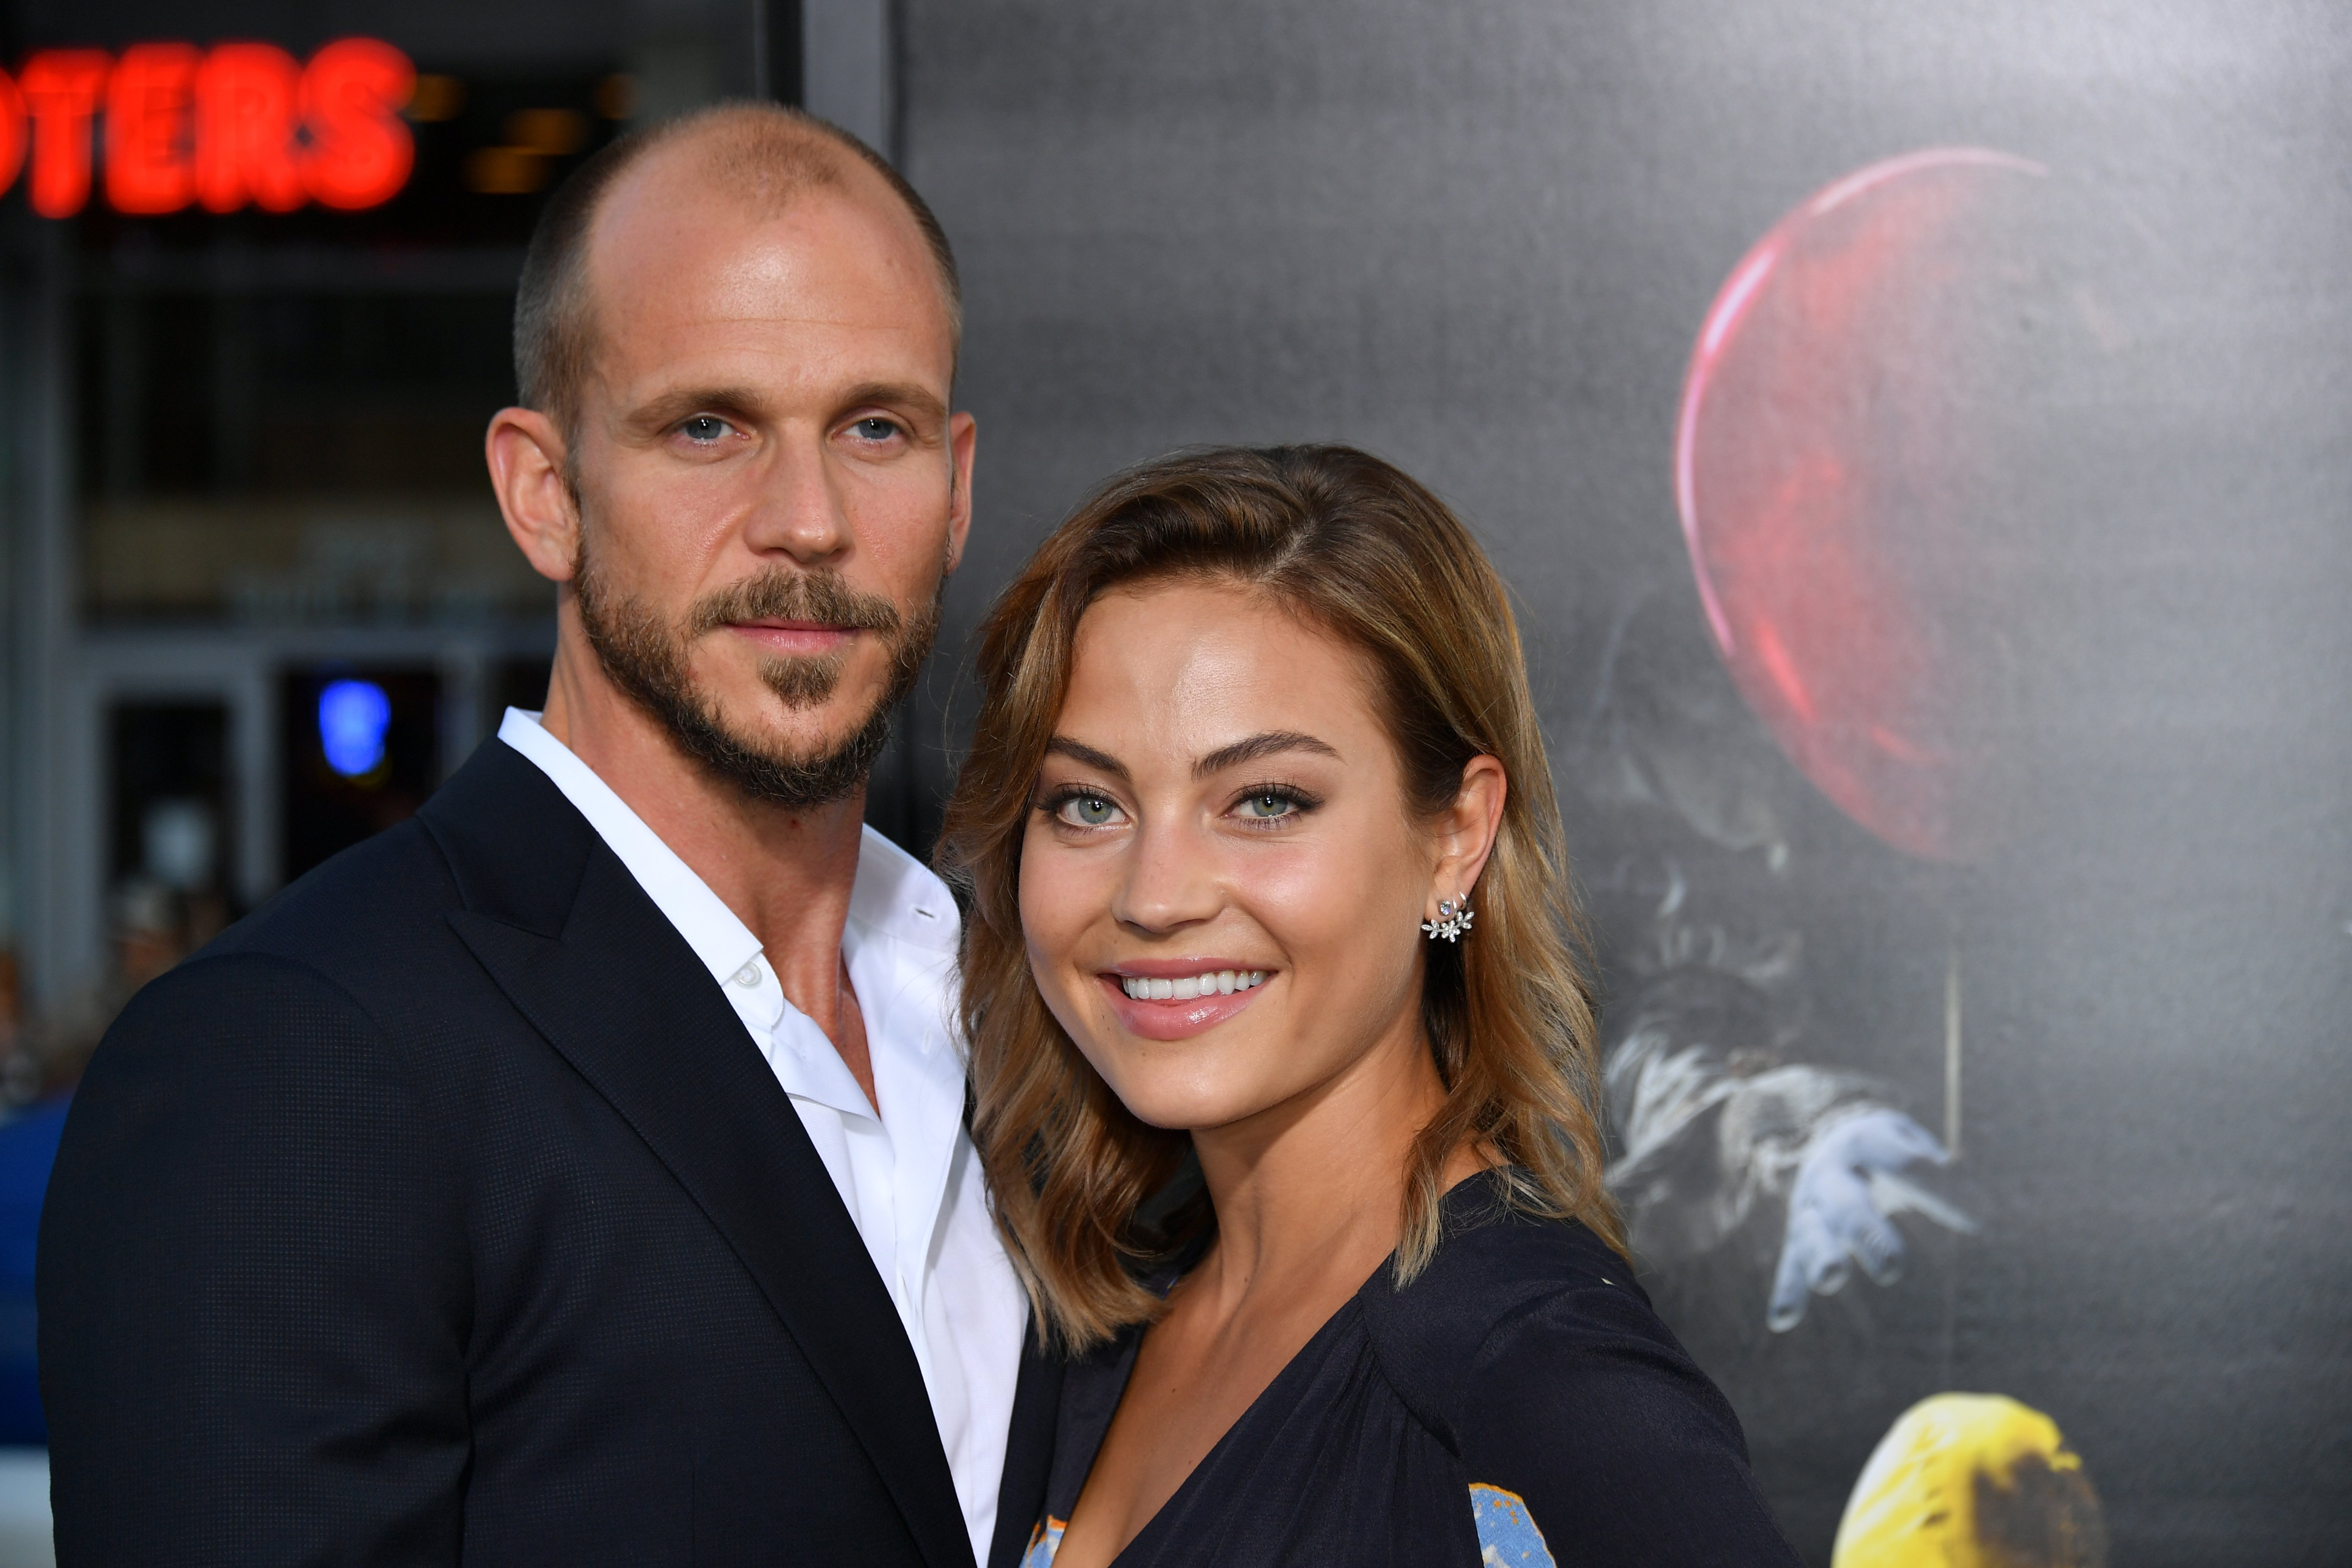 """Gustaf Skarsgard and Caroline Sjostrand attend the premiere of Warner Bros. Pictures and New Line Cinema's """"It"""" at the TCL Chinese Theatre on September 5, 2017 in Hollywood, California 